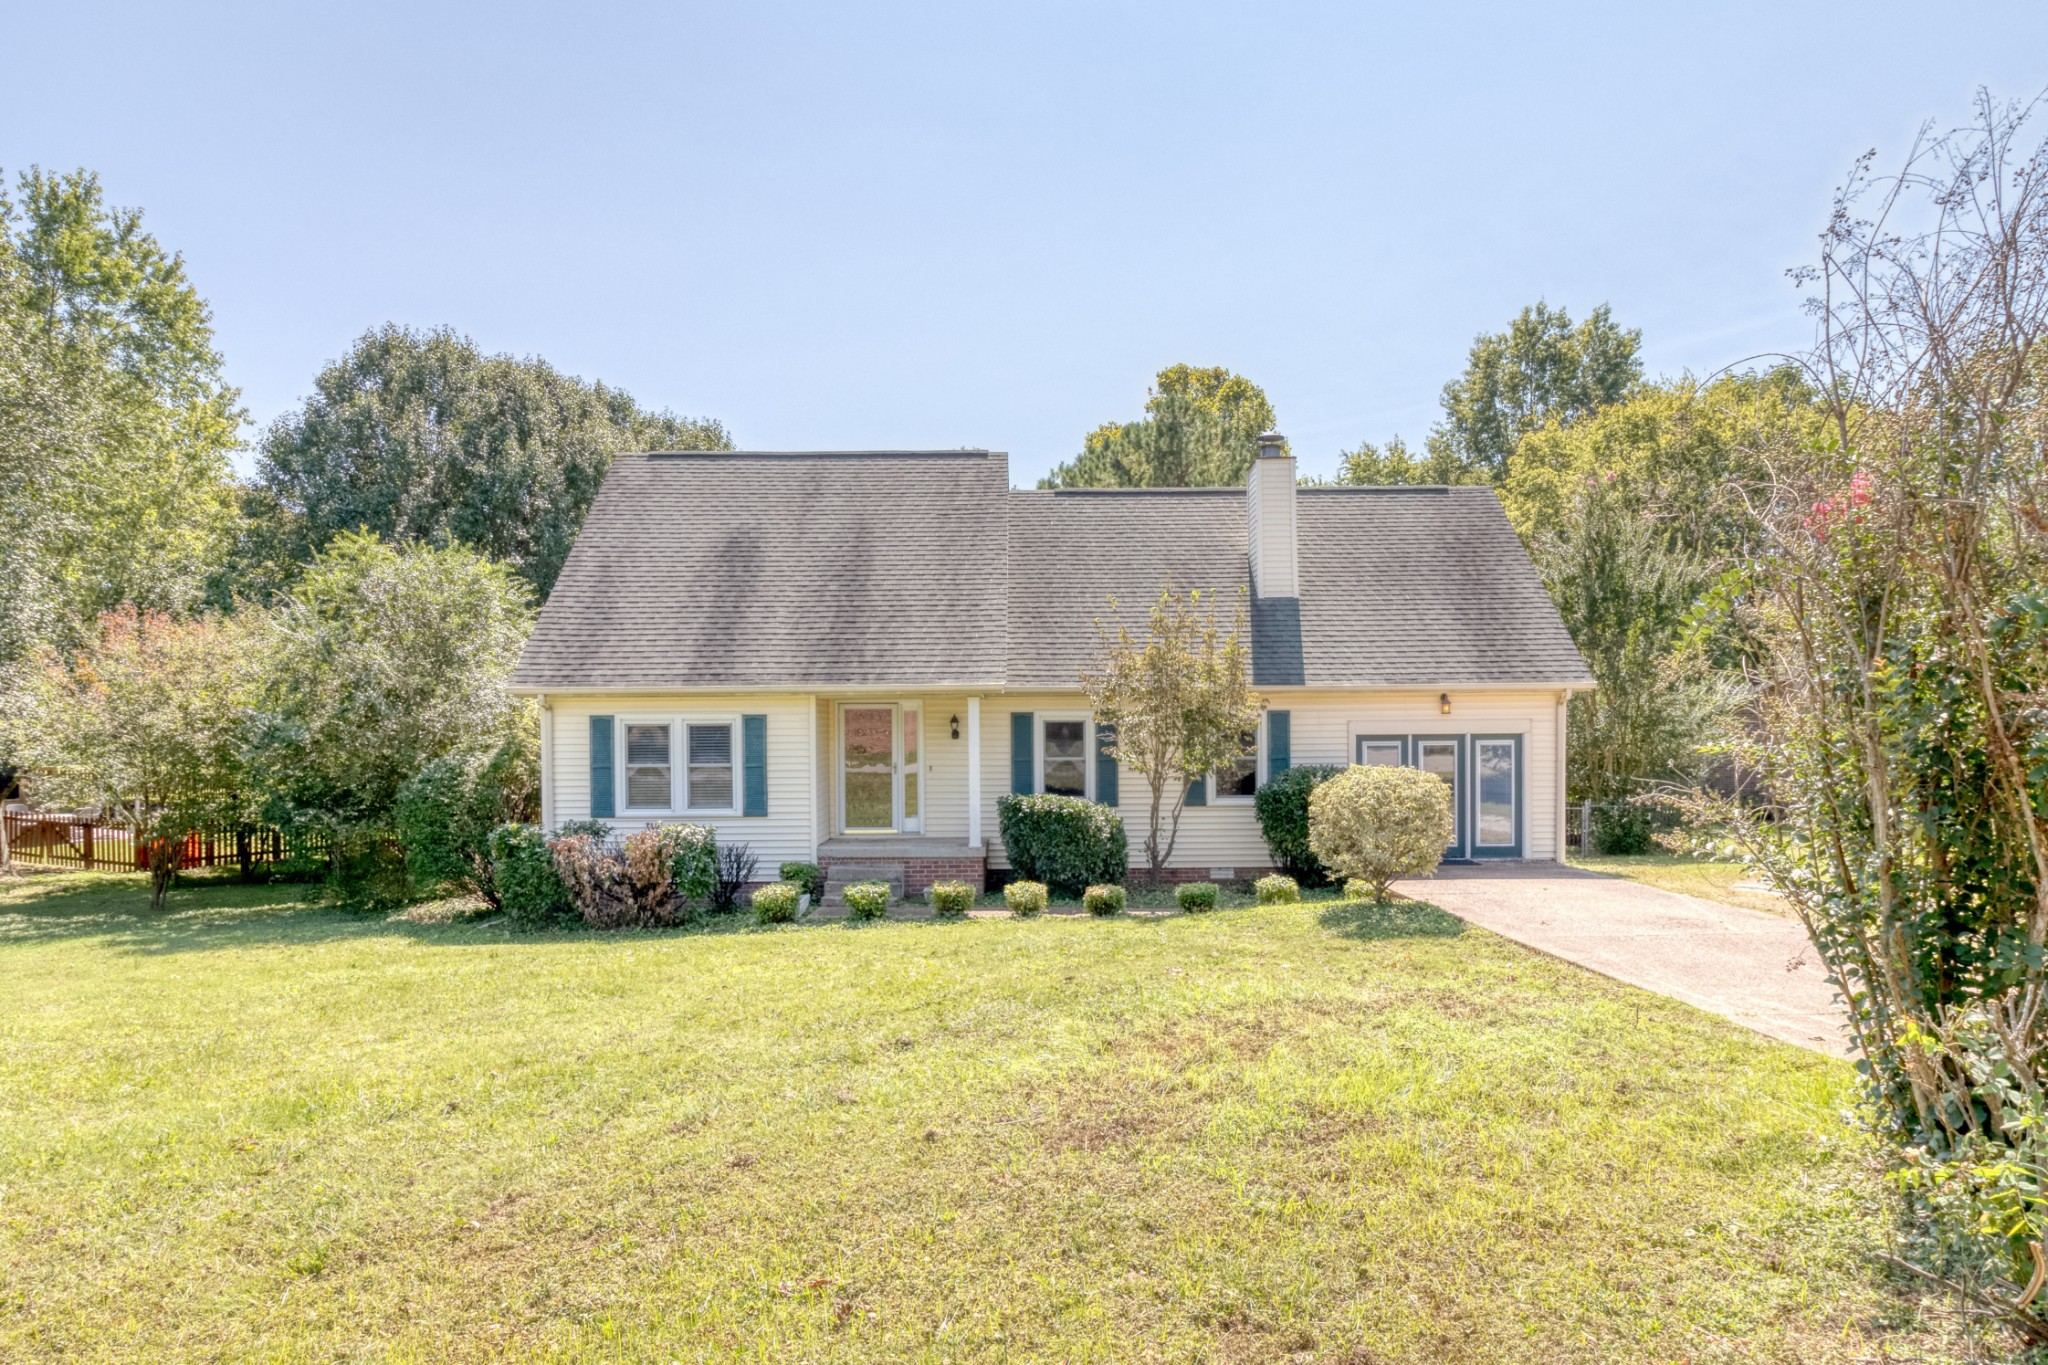 Charming 4 bedroom, 2 bathroom home in Riverview Park just minutes from Historic Downtown Franklin! This home features a large fenced in backyard, living room with a fireplace, plus two additional living areas! Download the Zillow app to access home. Search for the home in the app. Click Self Tour to unlock the door.